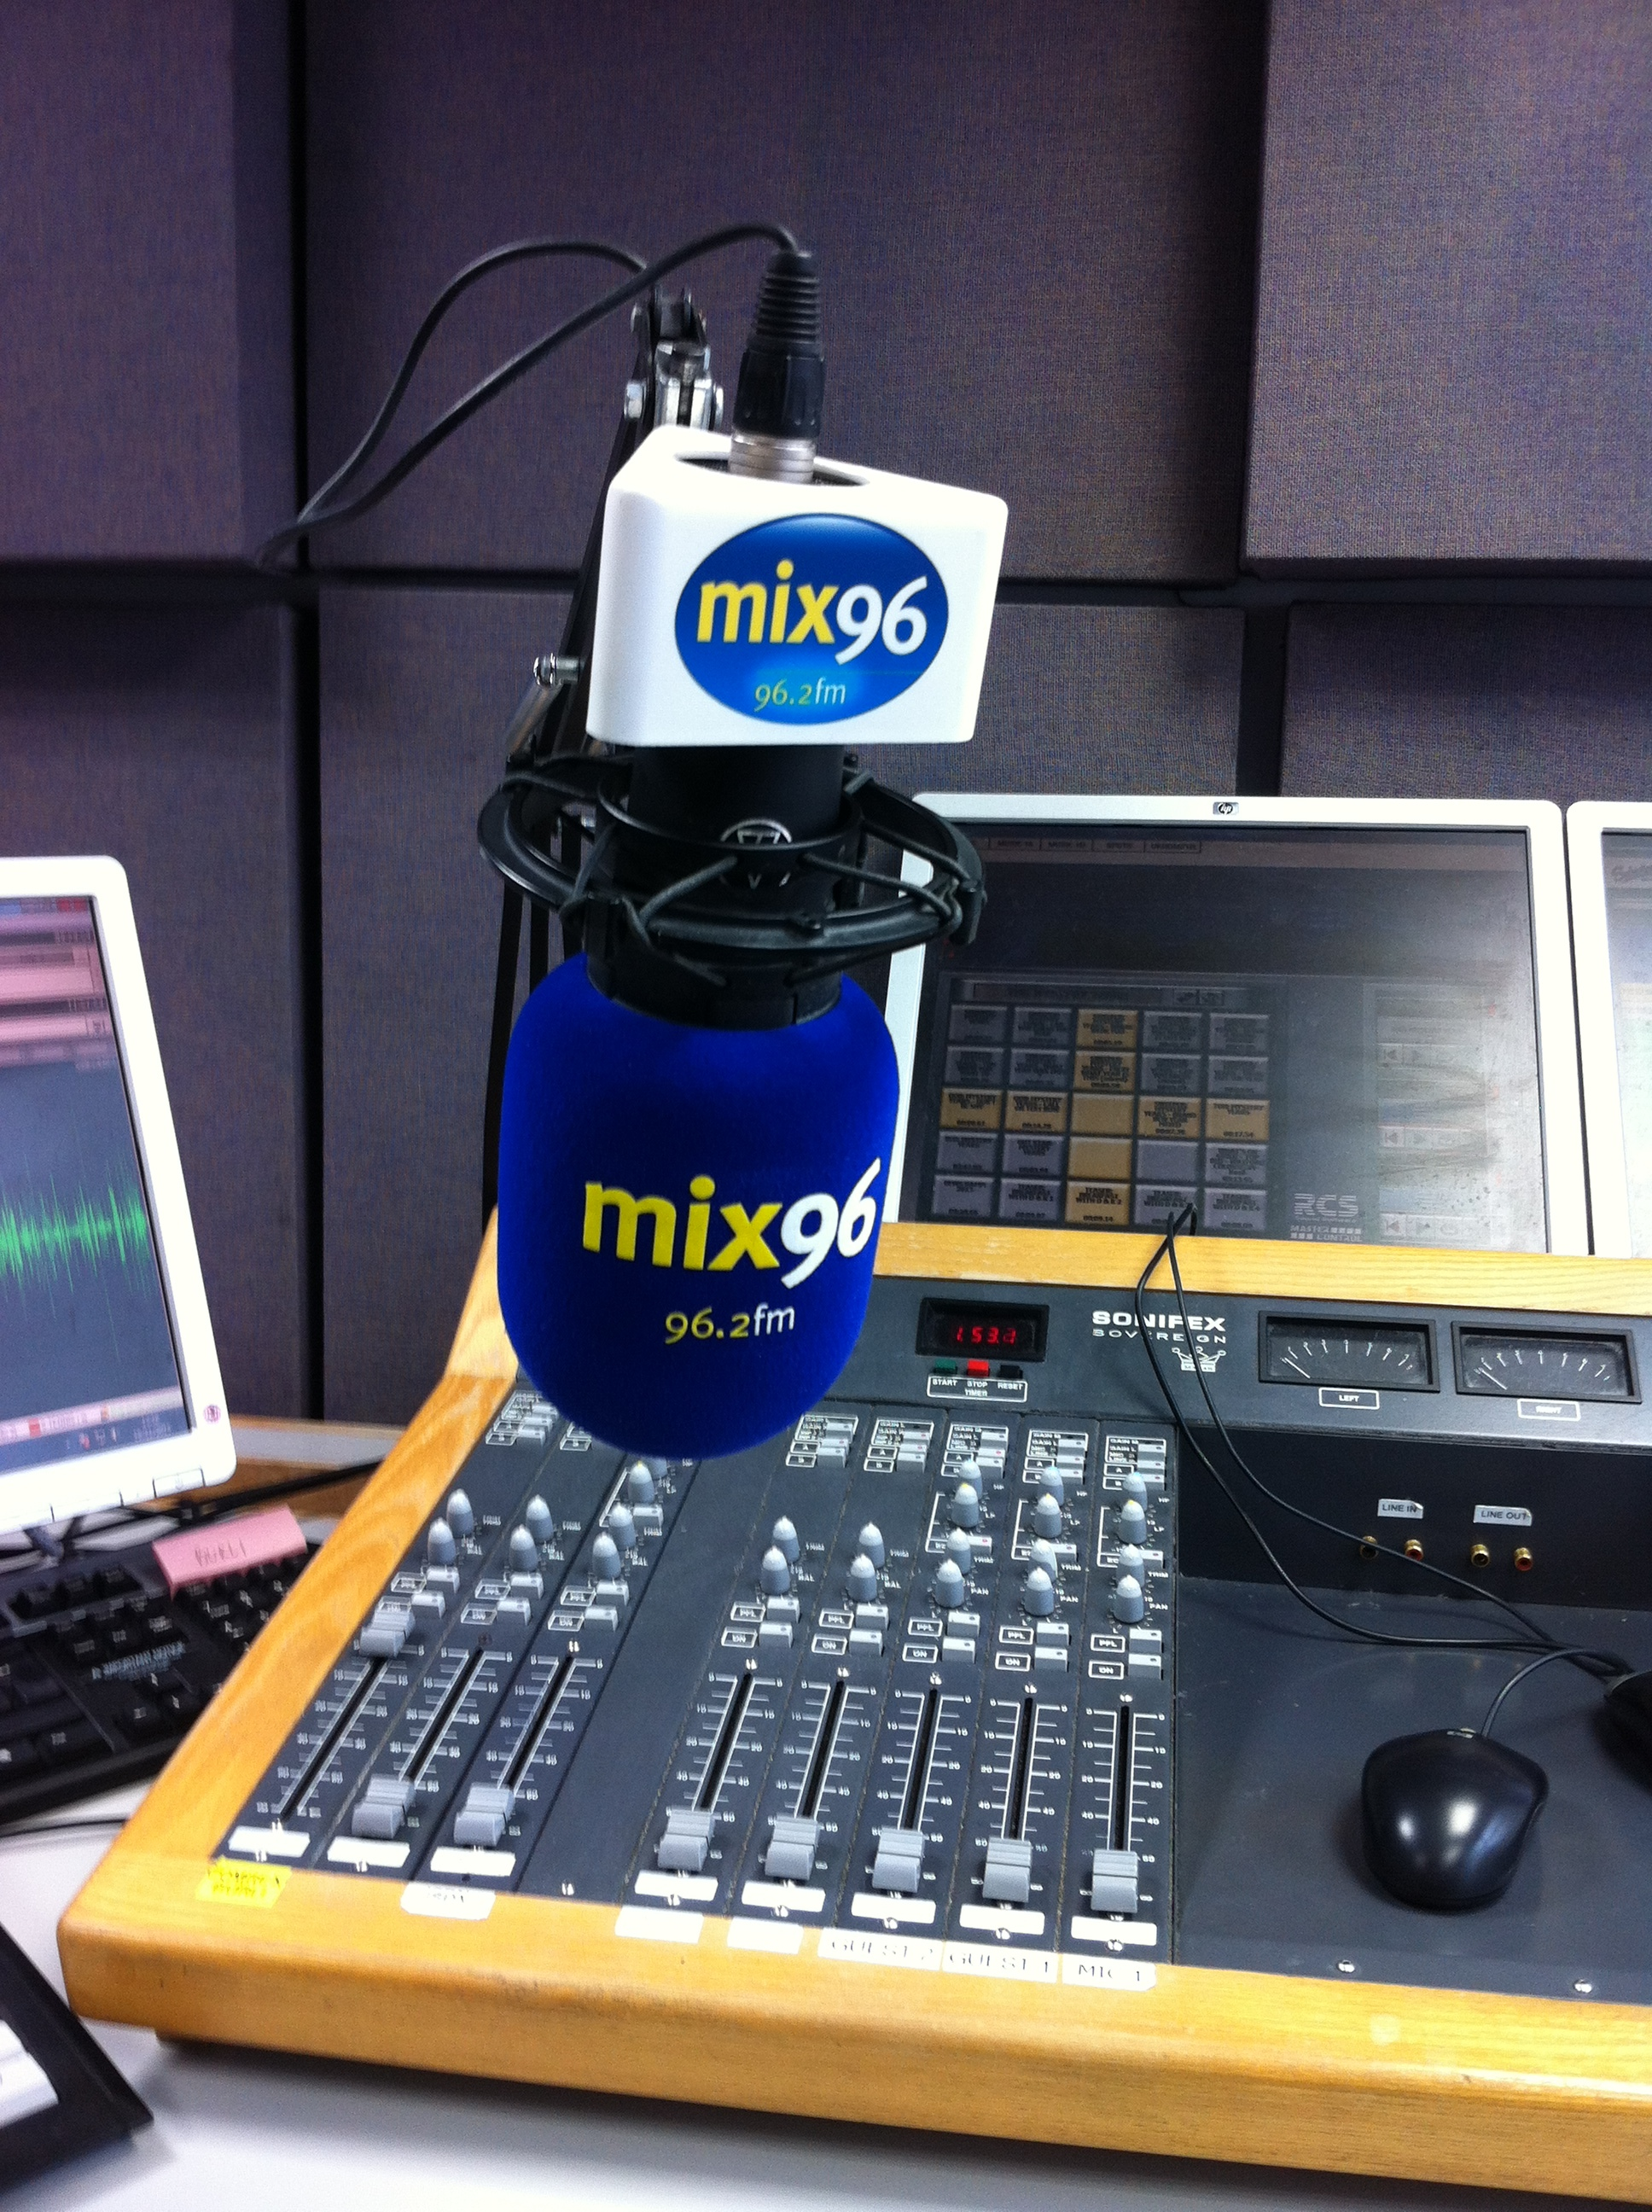 Mix 96 - https://www.mix96.co.uk/news/local/1832937/aylesbury-chefs-christmas-leftover-tips/https://www.mix96.co.uk/news/local/1798359/five-year-plan-to-get-bucks-eating-healthy/